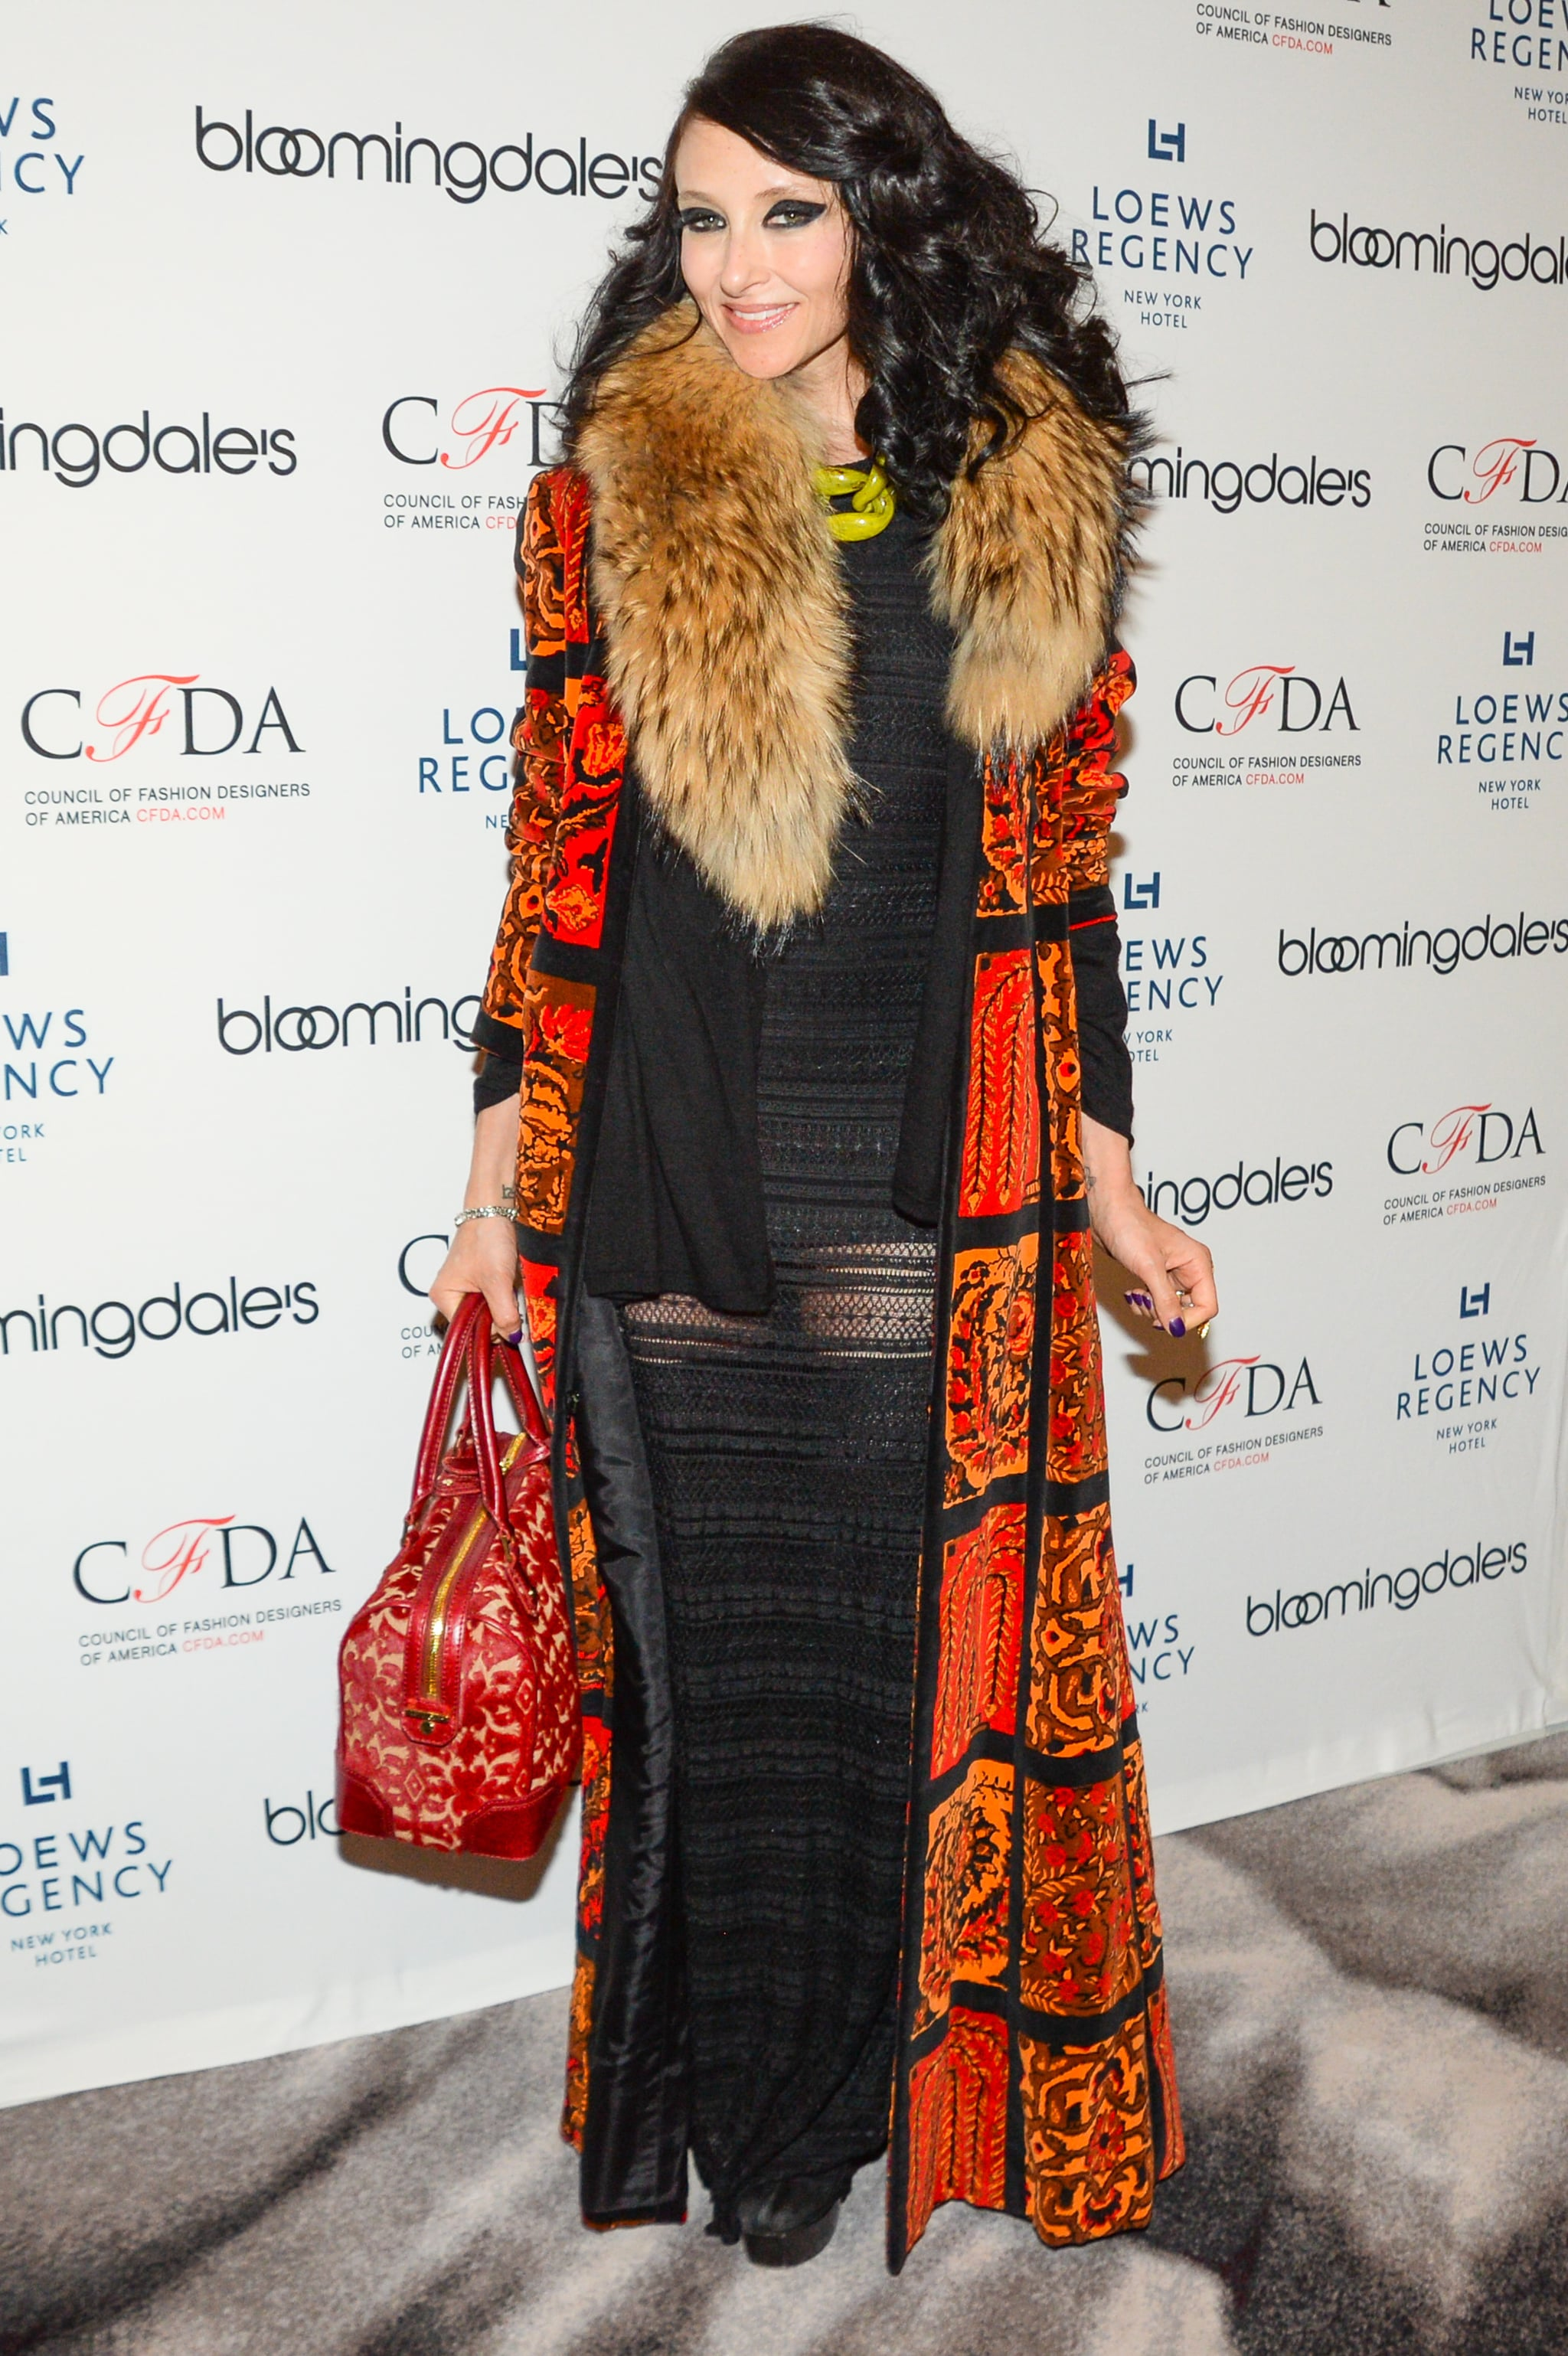 Stacey Bendet at the Bloomingdale's Super Bowl kickoff with the CFDA.